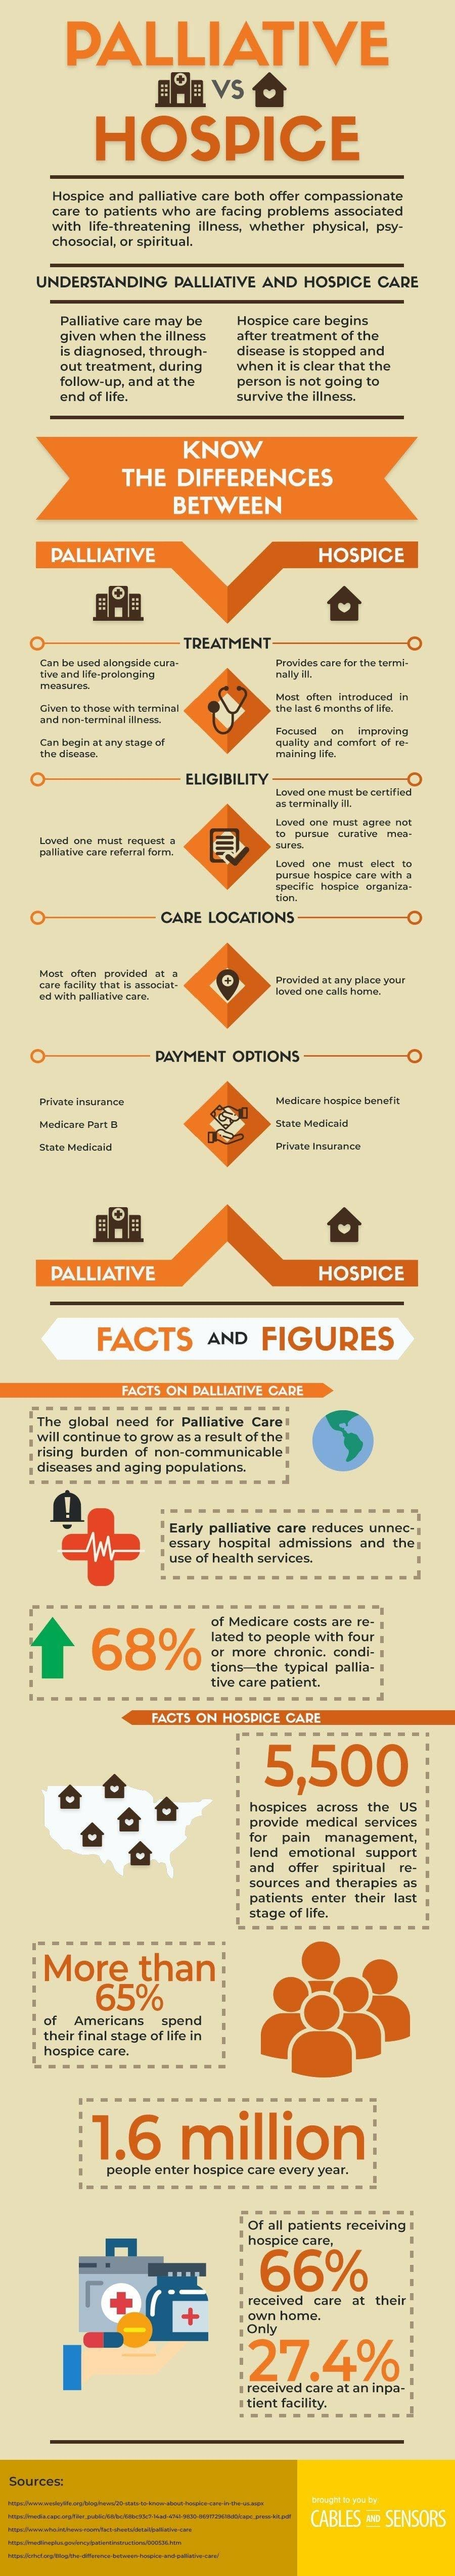 Palliative versus Hospice Care: Essential Aspects of Health Care #infographic